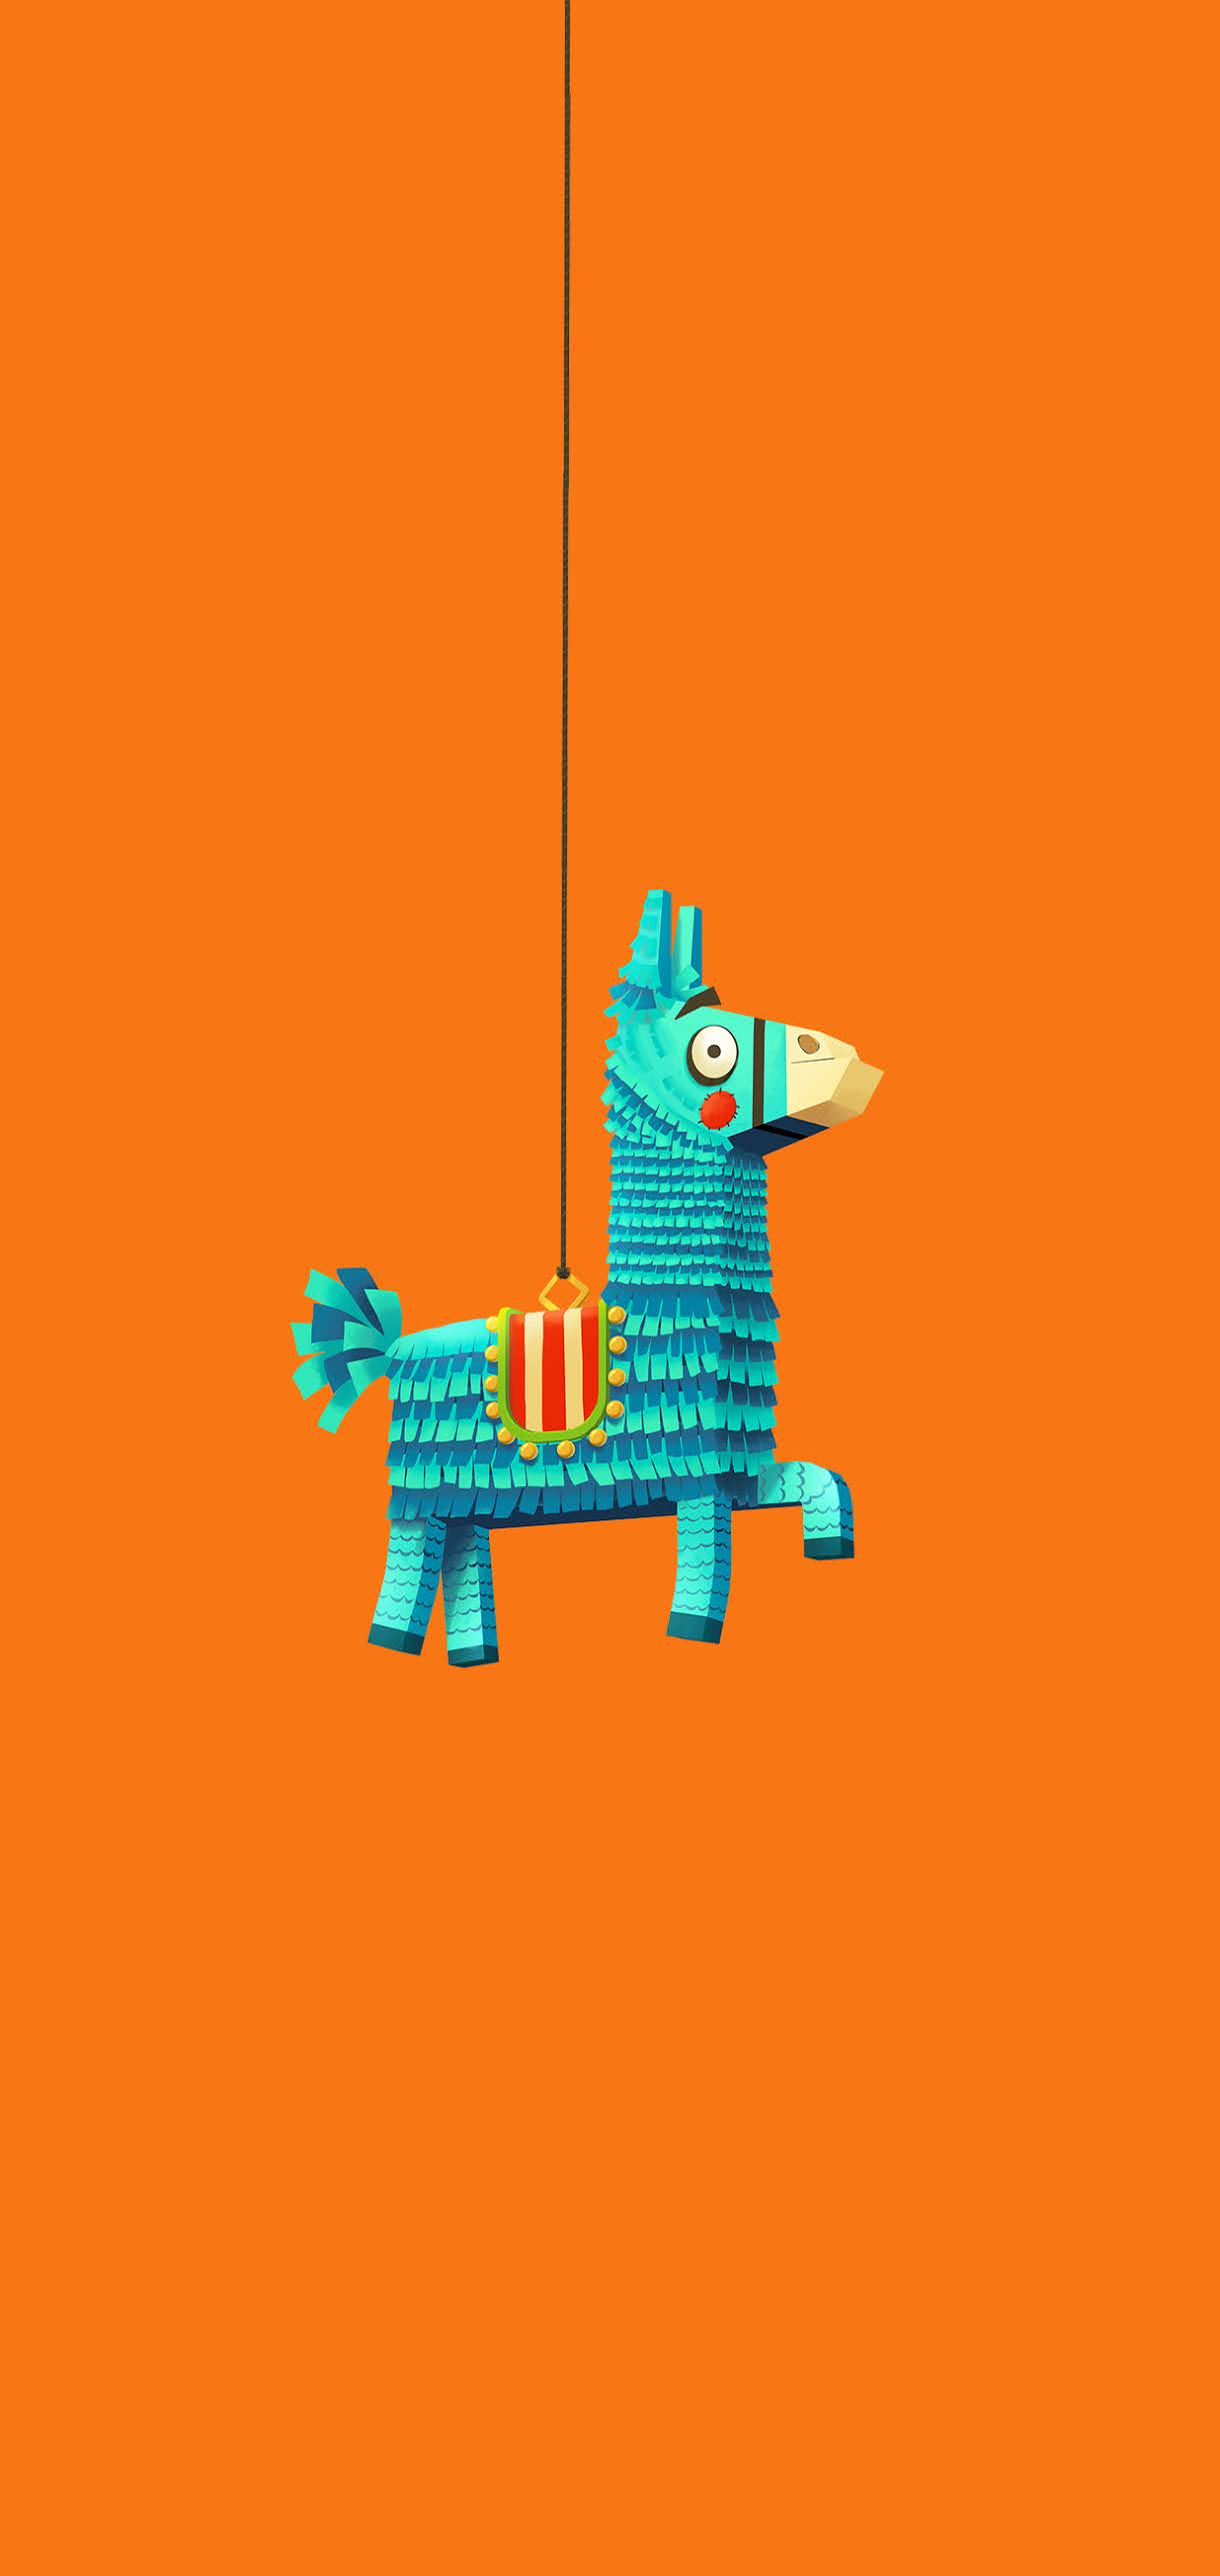 FORTNITE WALLPAPER PHONE - Llama Pinatas